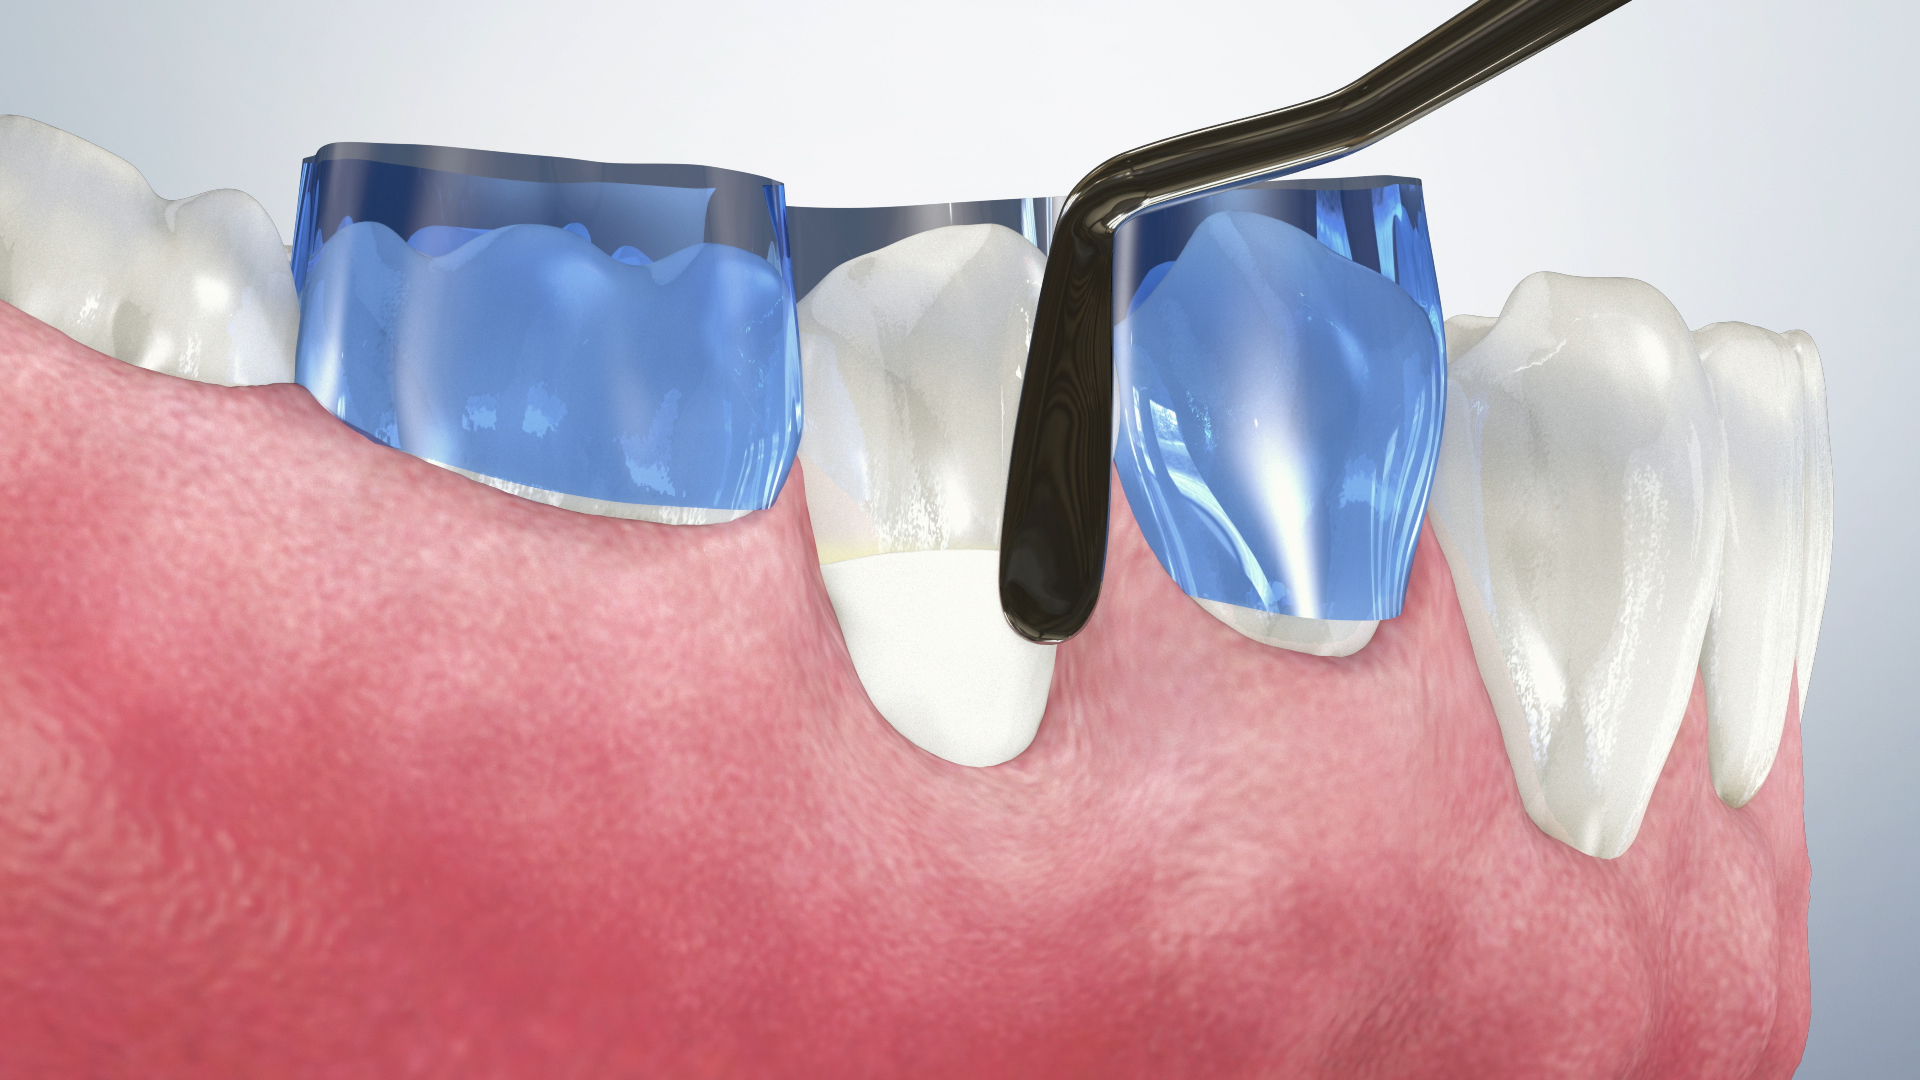 Thumbnail for a video on NCCL/ Abfraction Composite Restorations